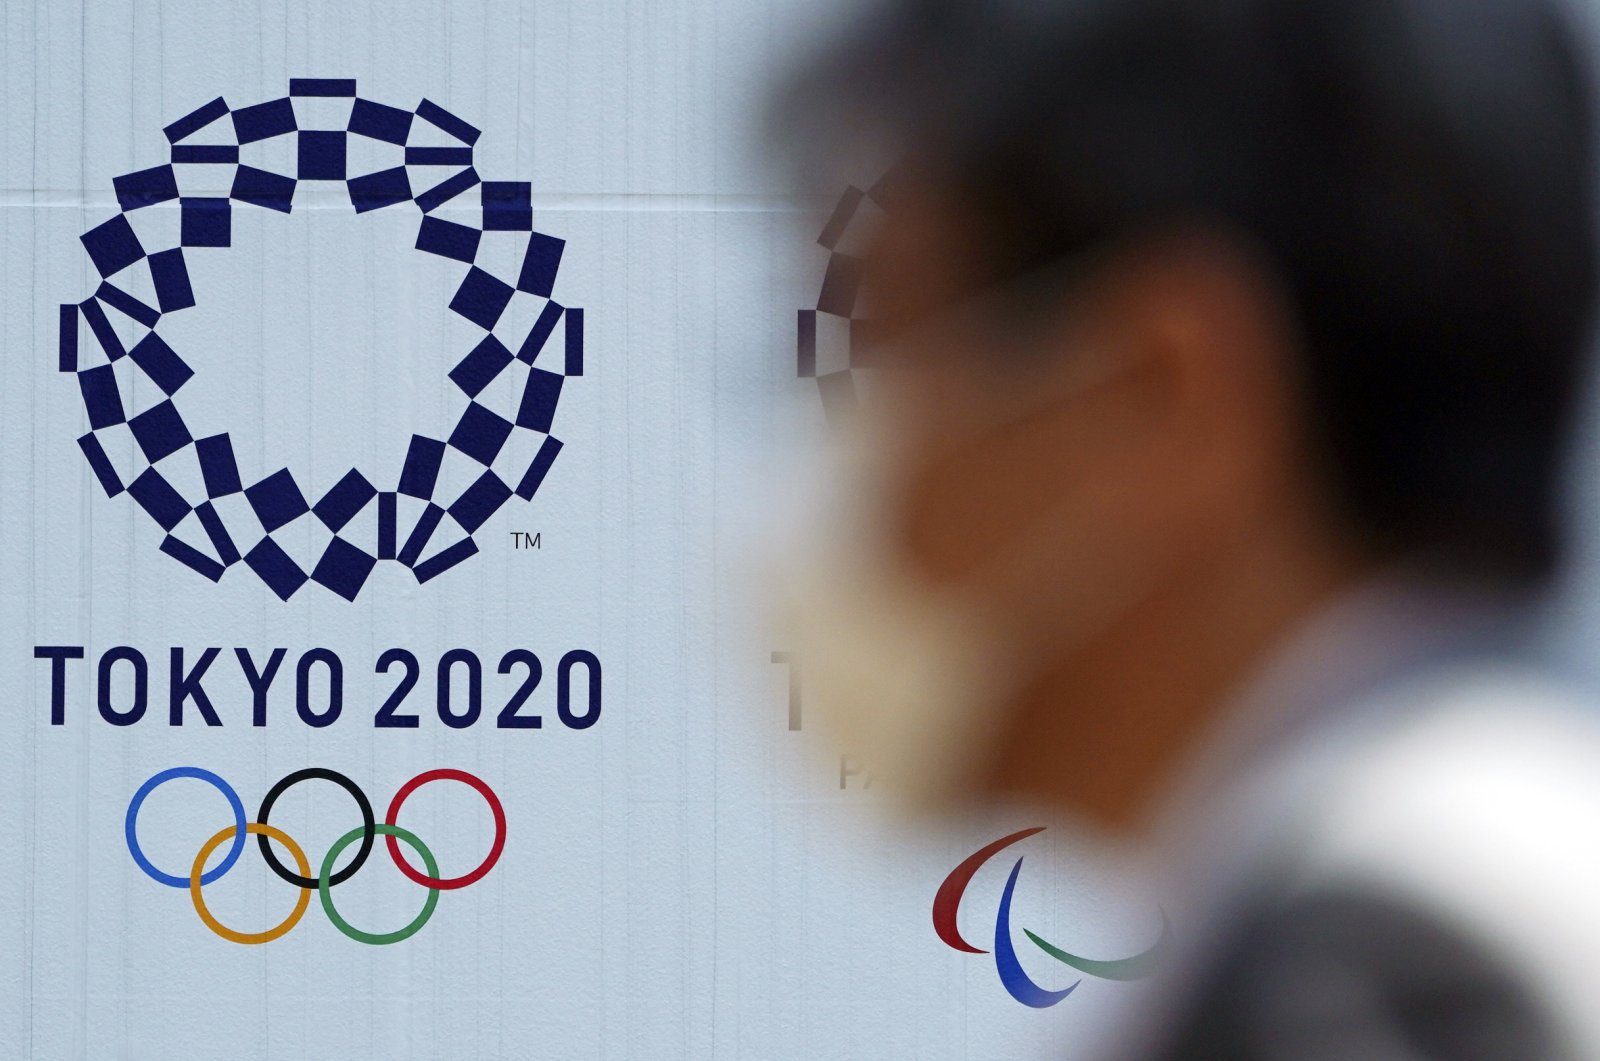 A man wearing a face mask walks near the logo of the Tokyo 2020 Olympics, in Tokyo, Japan, April 2, 2020. (AP Photo)